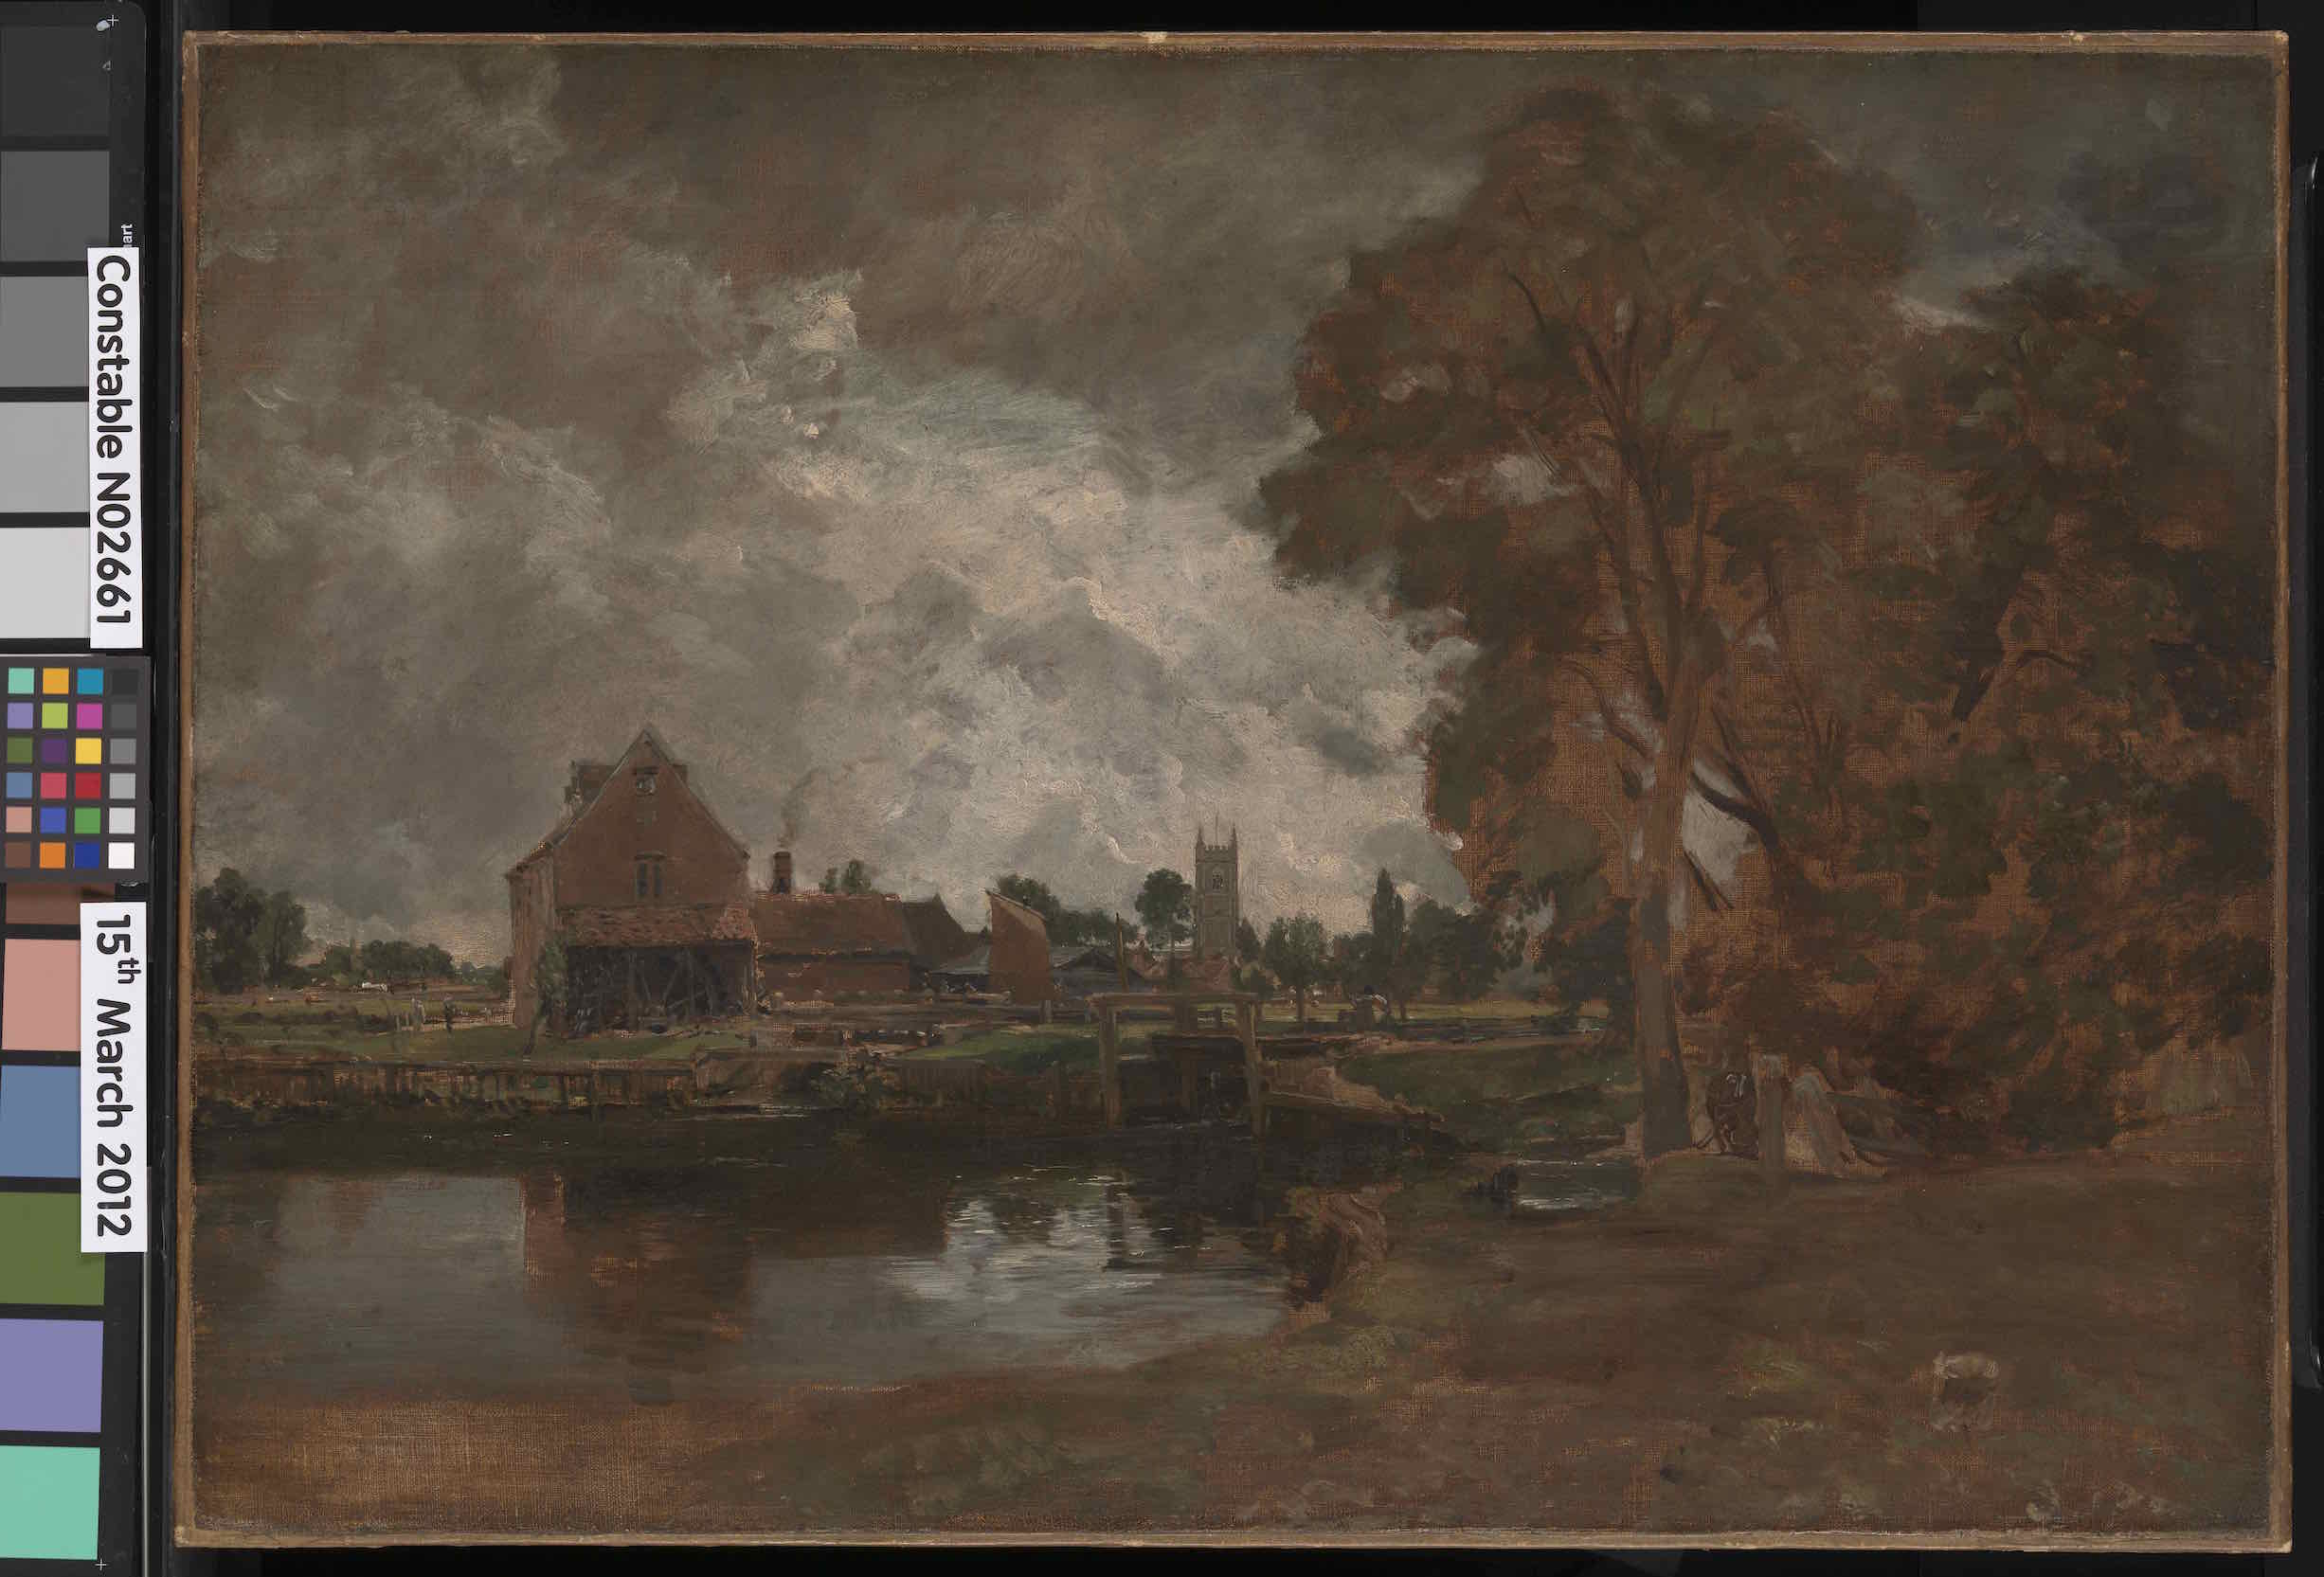 Landscapes of the Mind: Masterpieces from Tate Britain (1700-1998)